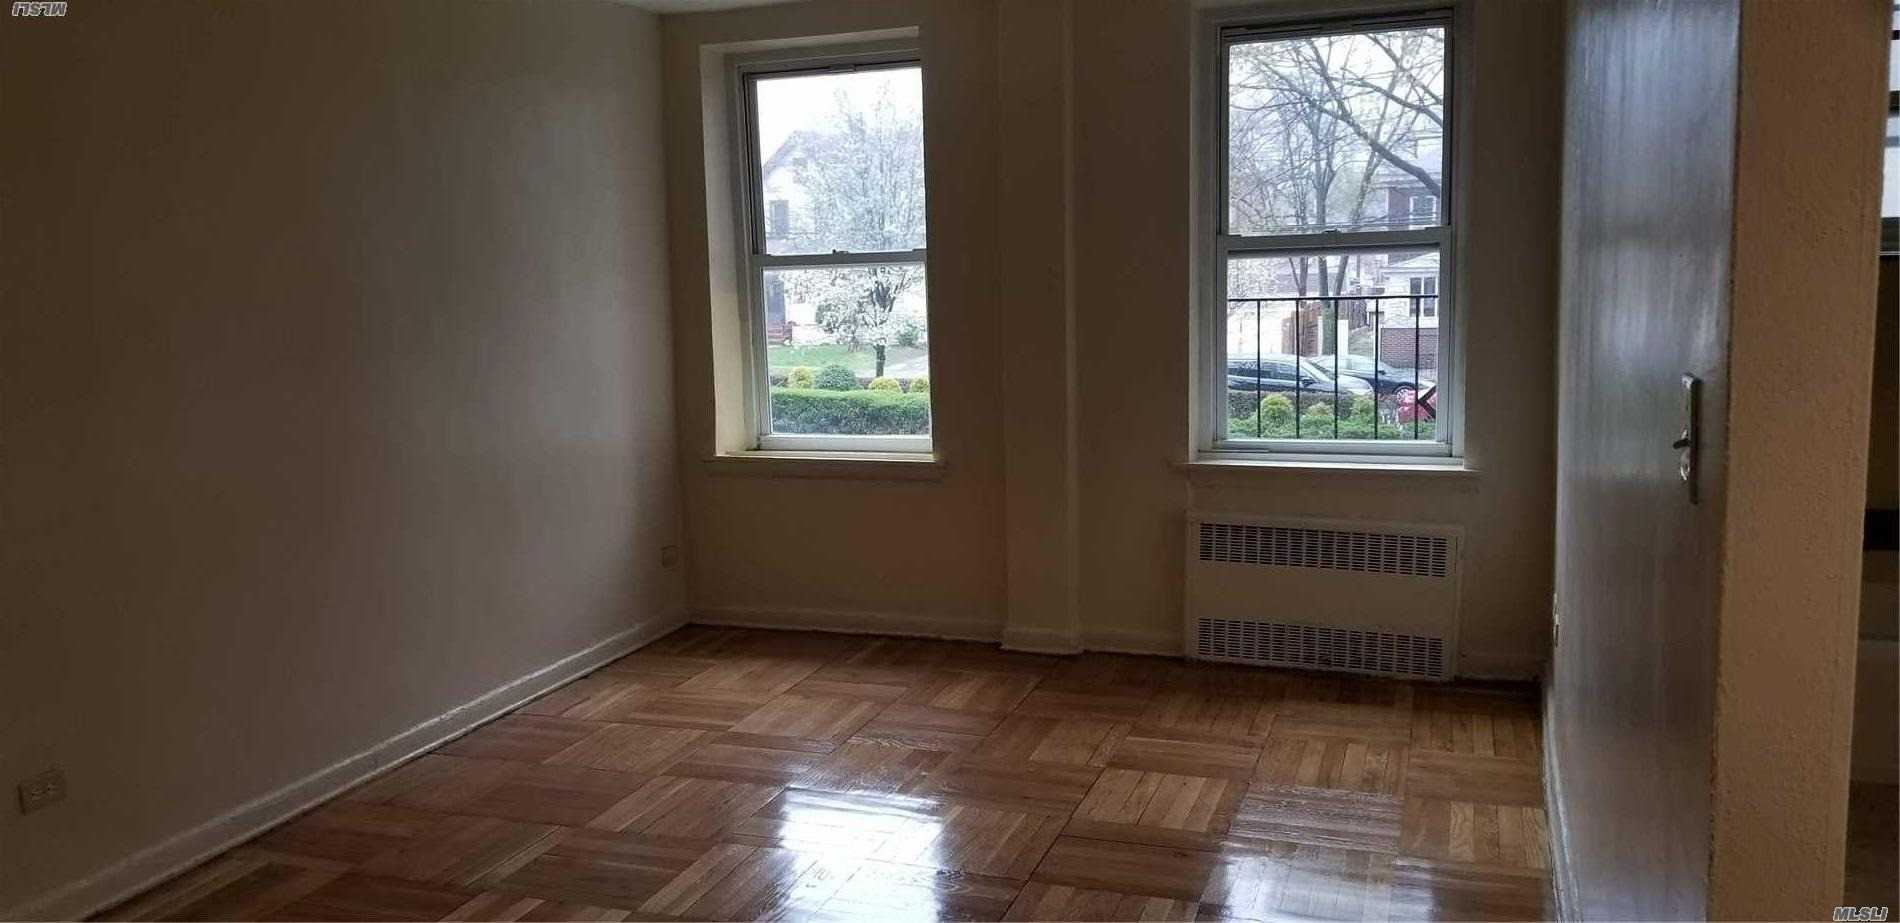 Jamaica Hills; This co-op feature a desirable 1st floor studio unit with full bath, and kitchen. Hardwood floors throughout and plenty of closet space. Indoor parking available and it has a 24 hr gym. 2 blocks from F train and other major transportation. Tons of shopping in walking distance. Pets allowed, dogs under 25 lbs.